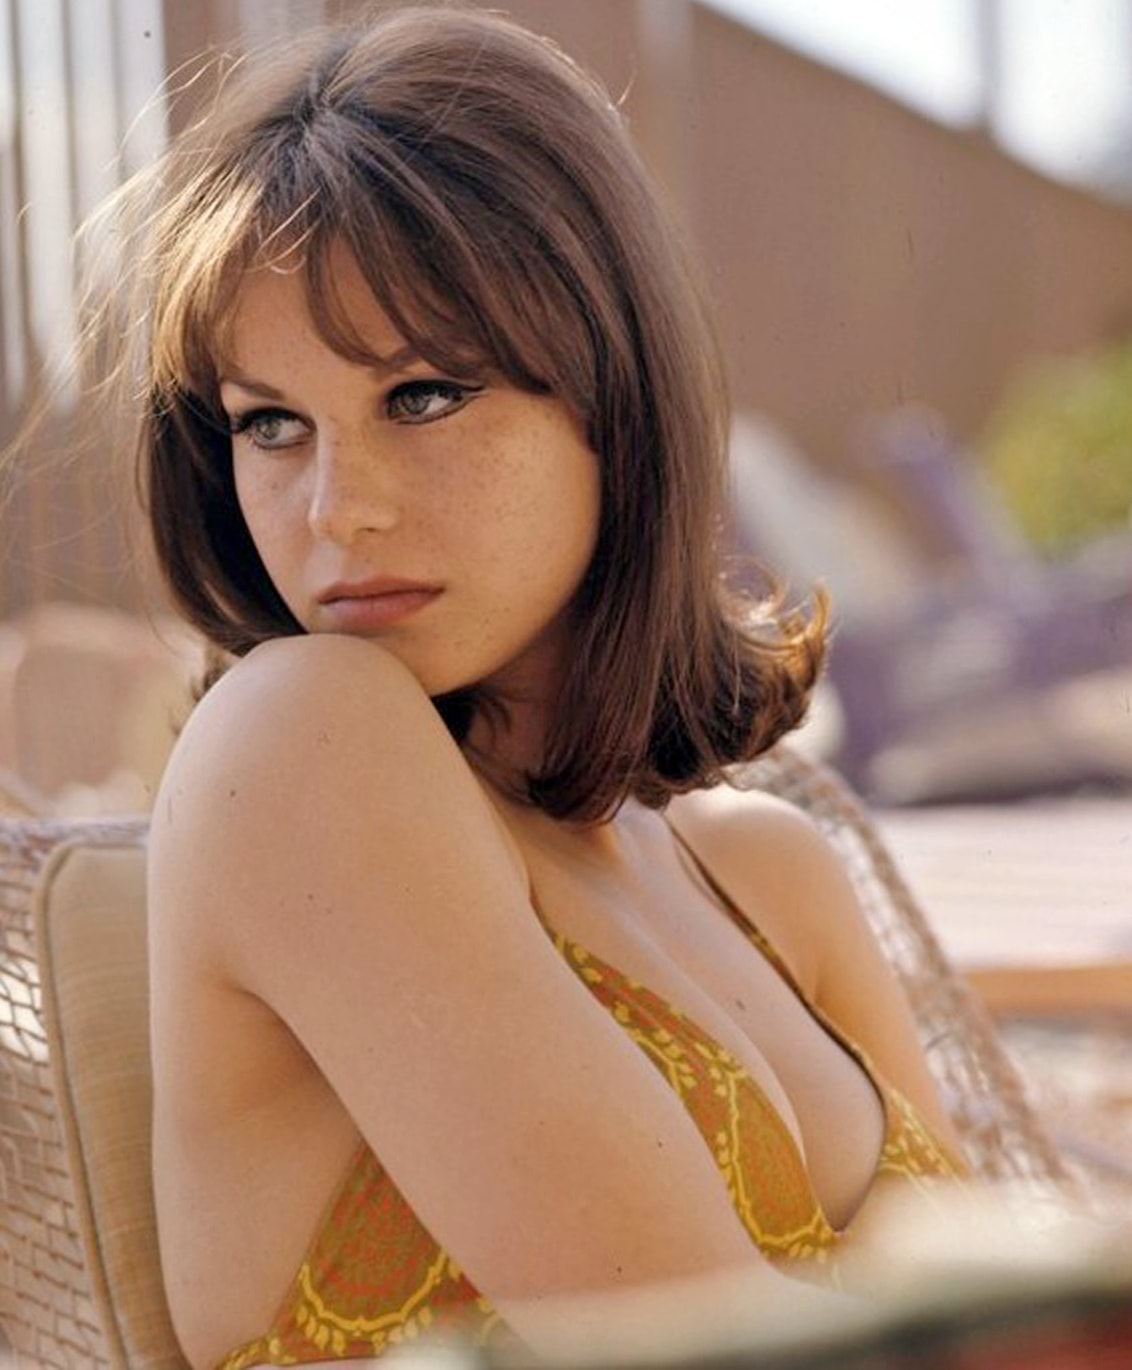 Lana Wood For mobile